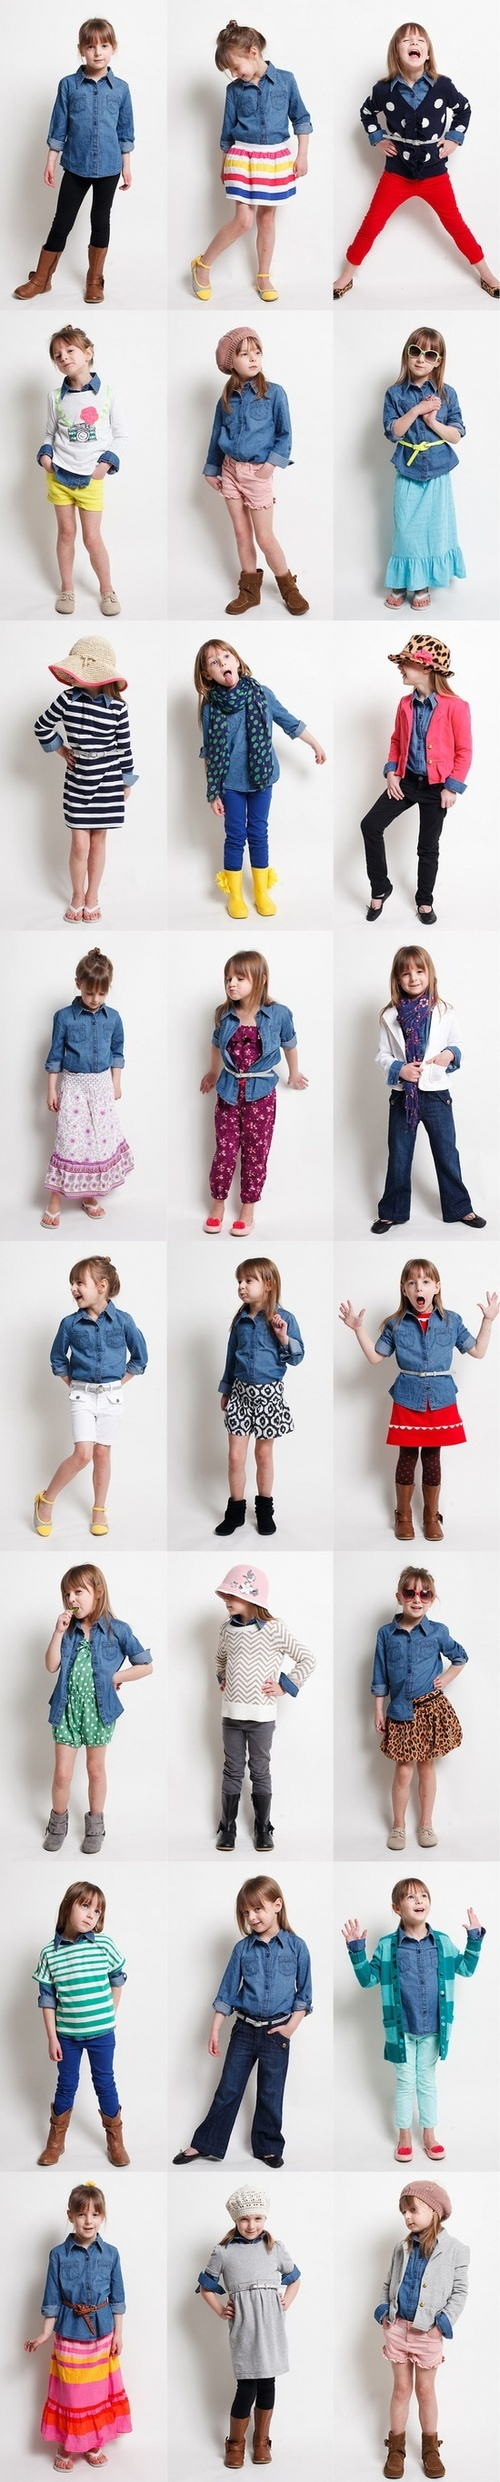 adorable!!! I'm in love with those rompers!!!!